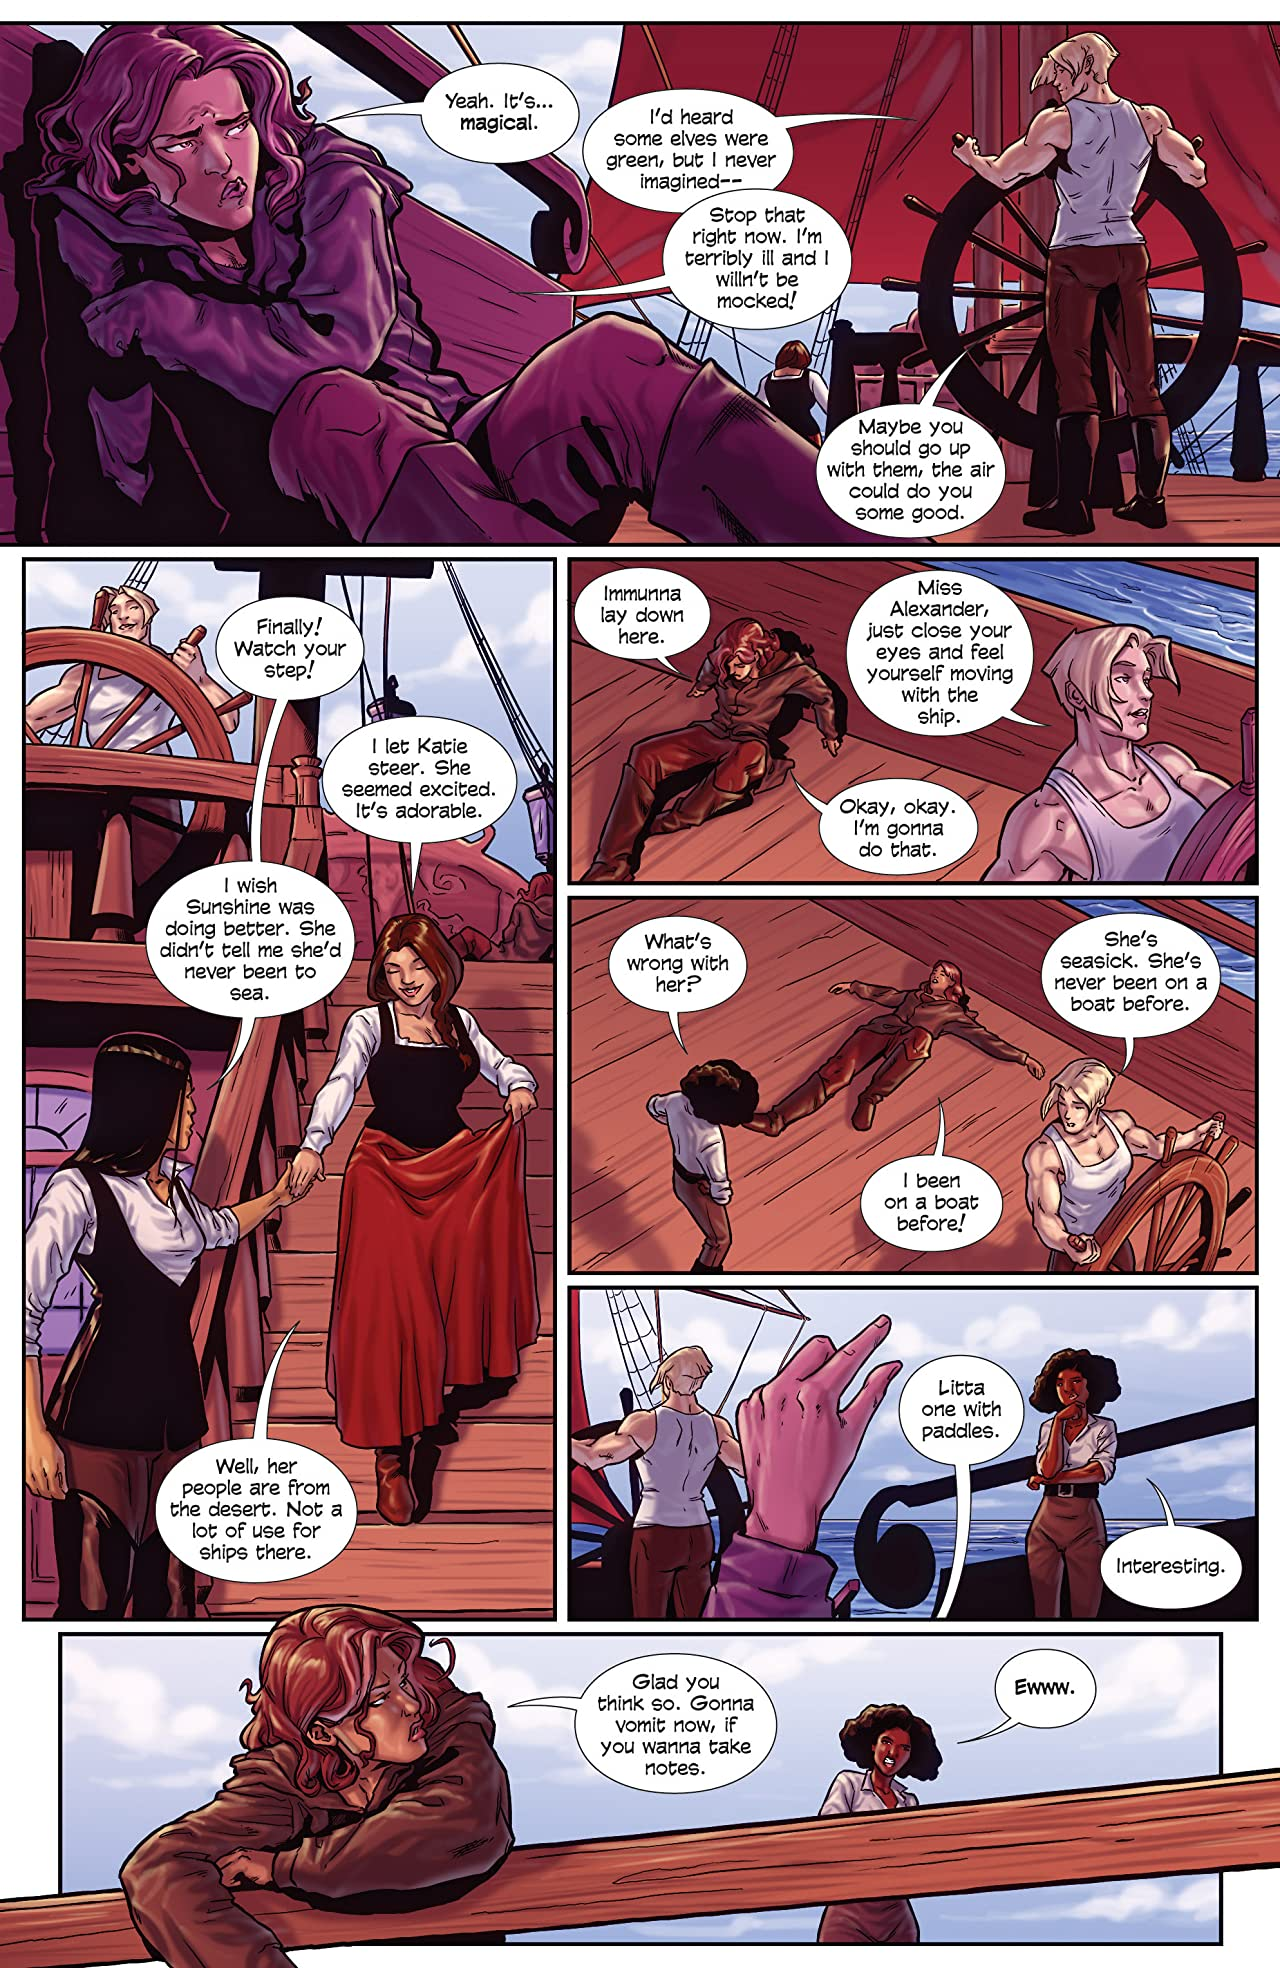 Princeless- Raven: The Pirate Princess Tome 2: Free Women